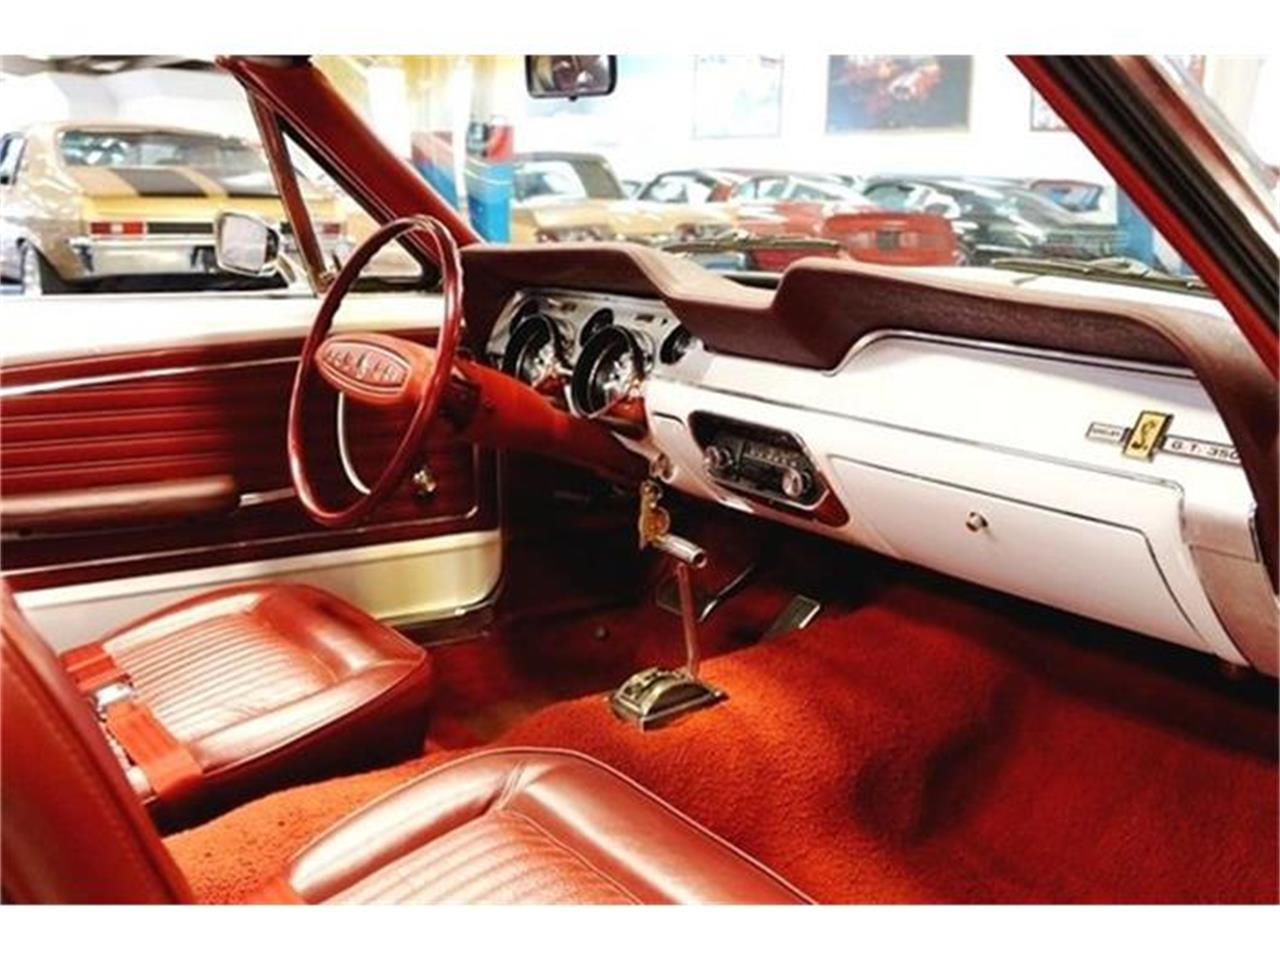 Large Picture of Classic '68 Ford Mustang GT350 located in Texas - $46,900.00 Offered by A&E Classic Cars - FL3T